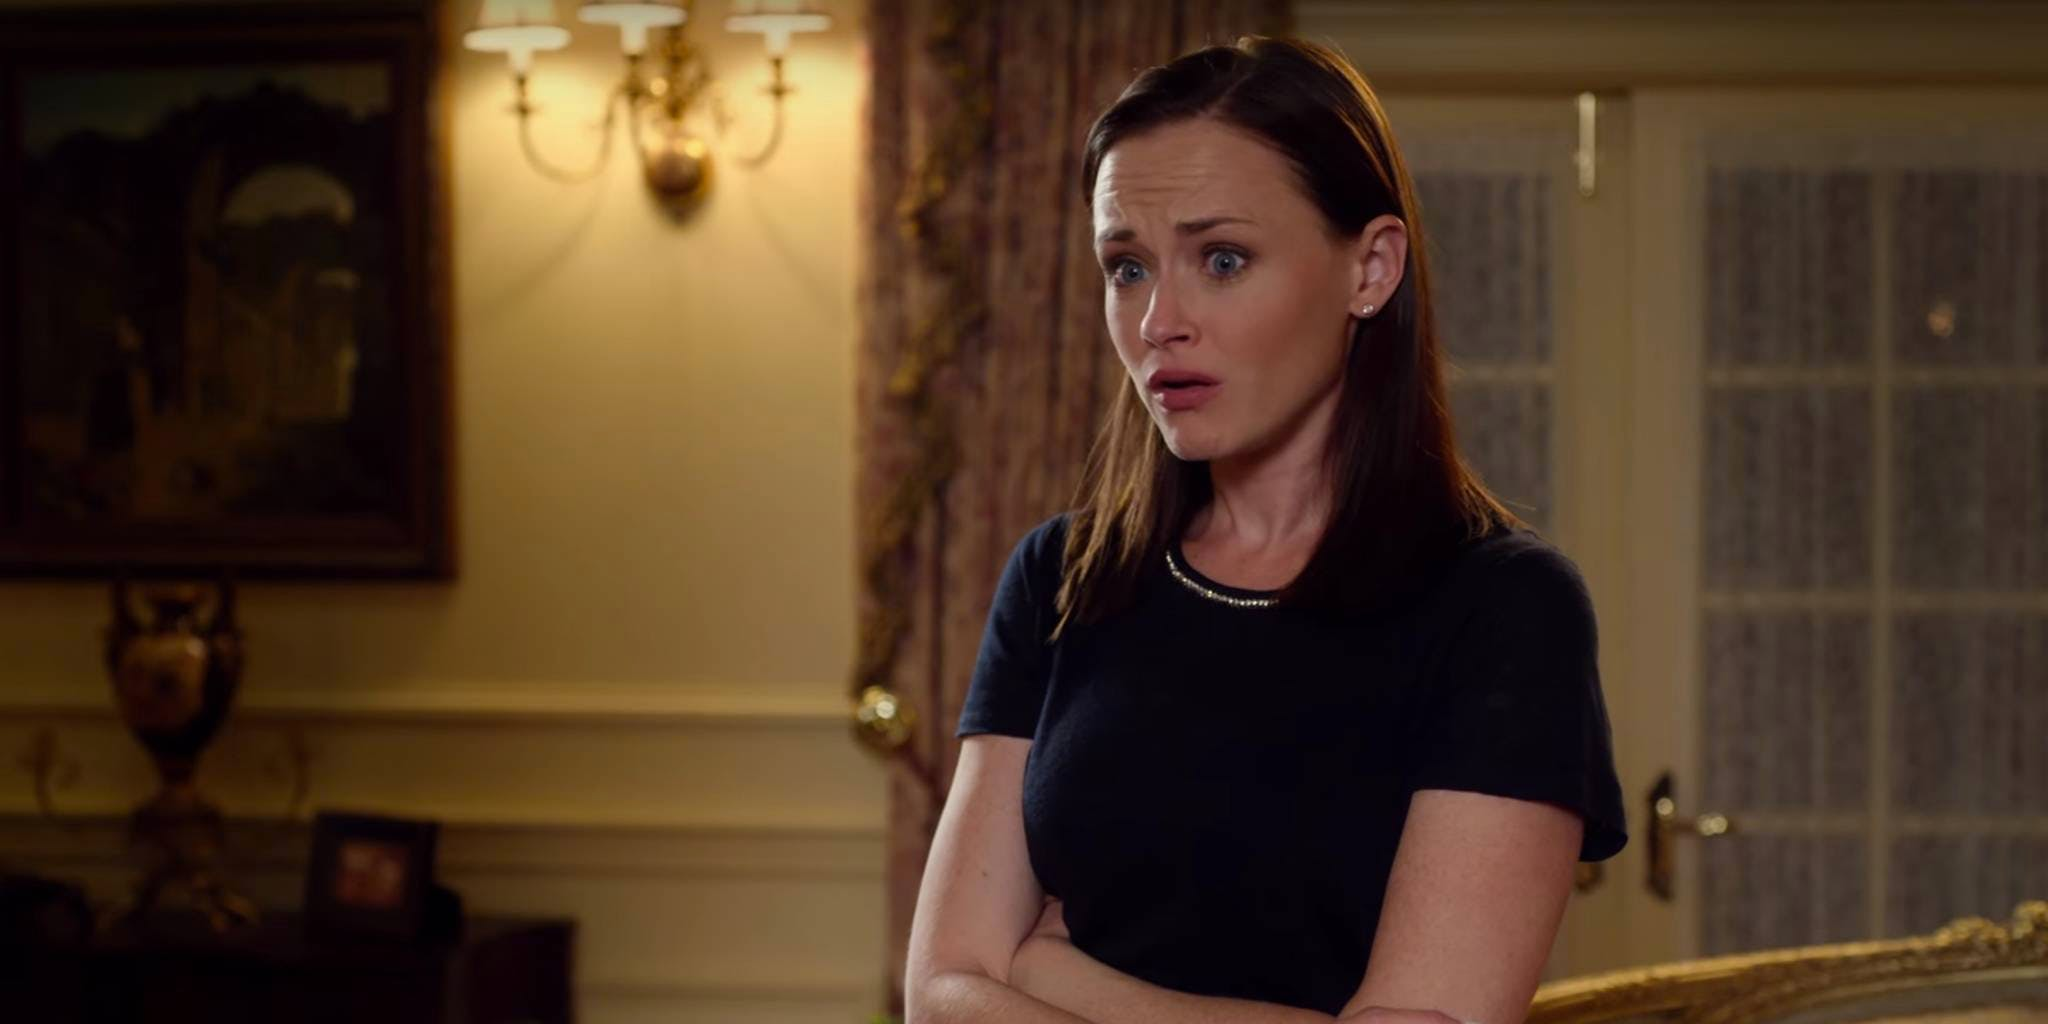 How much does Netflix cost: Gilmore Girls